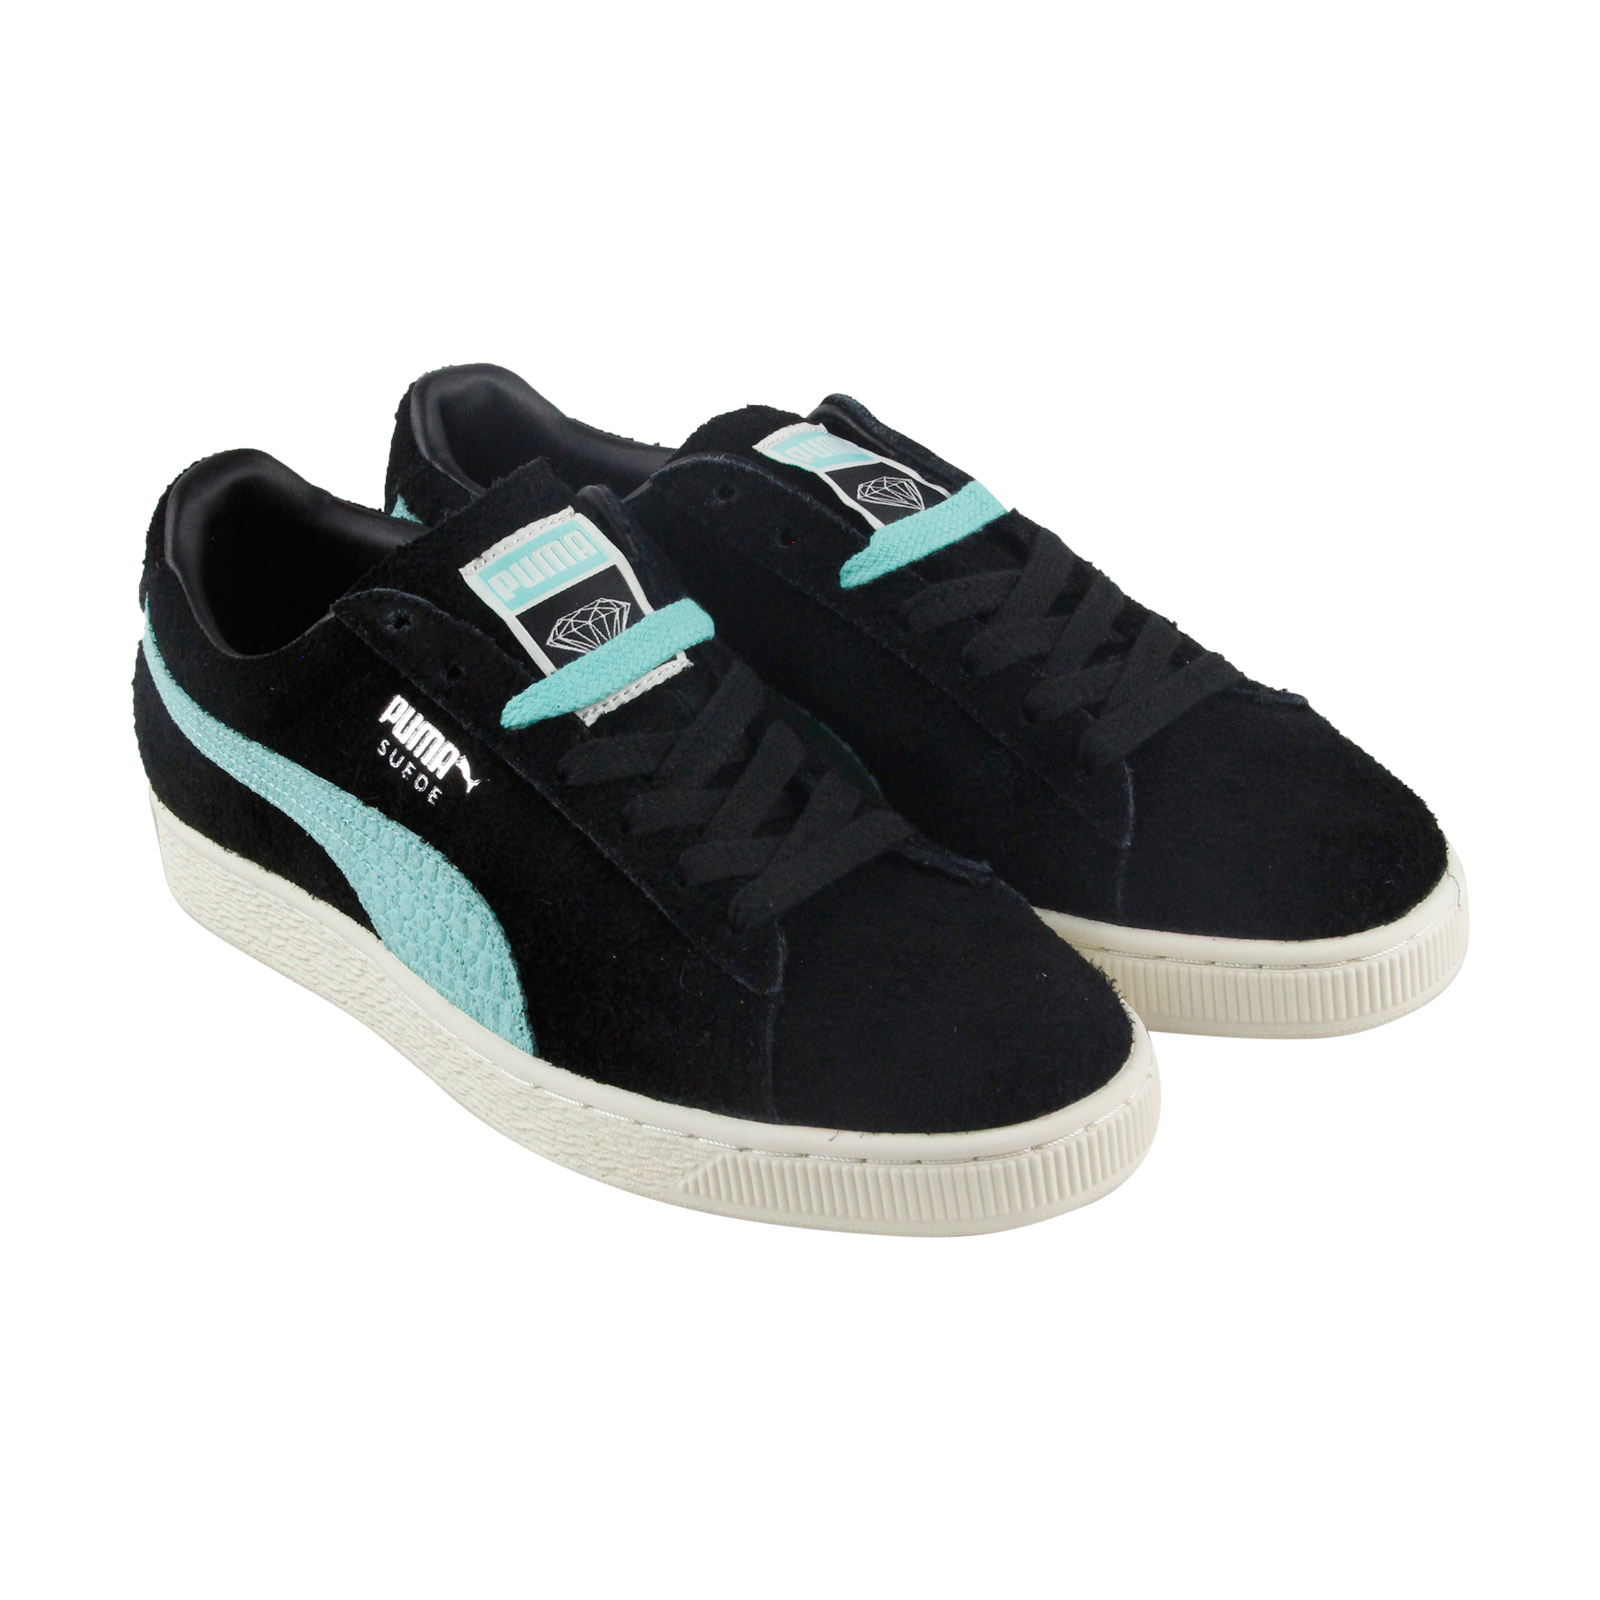 a4e01404a3 Puma X Diamond Suede Mens Black Suede Low Top Lace Up Sneakers Shoes